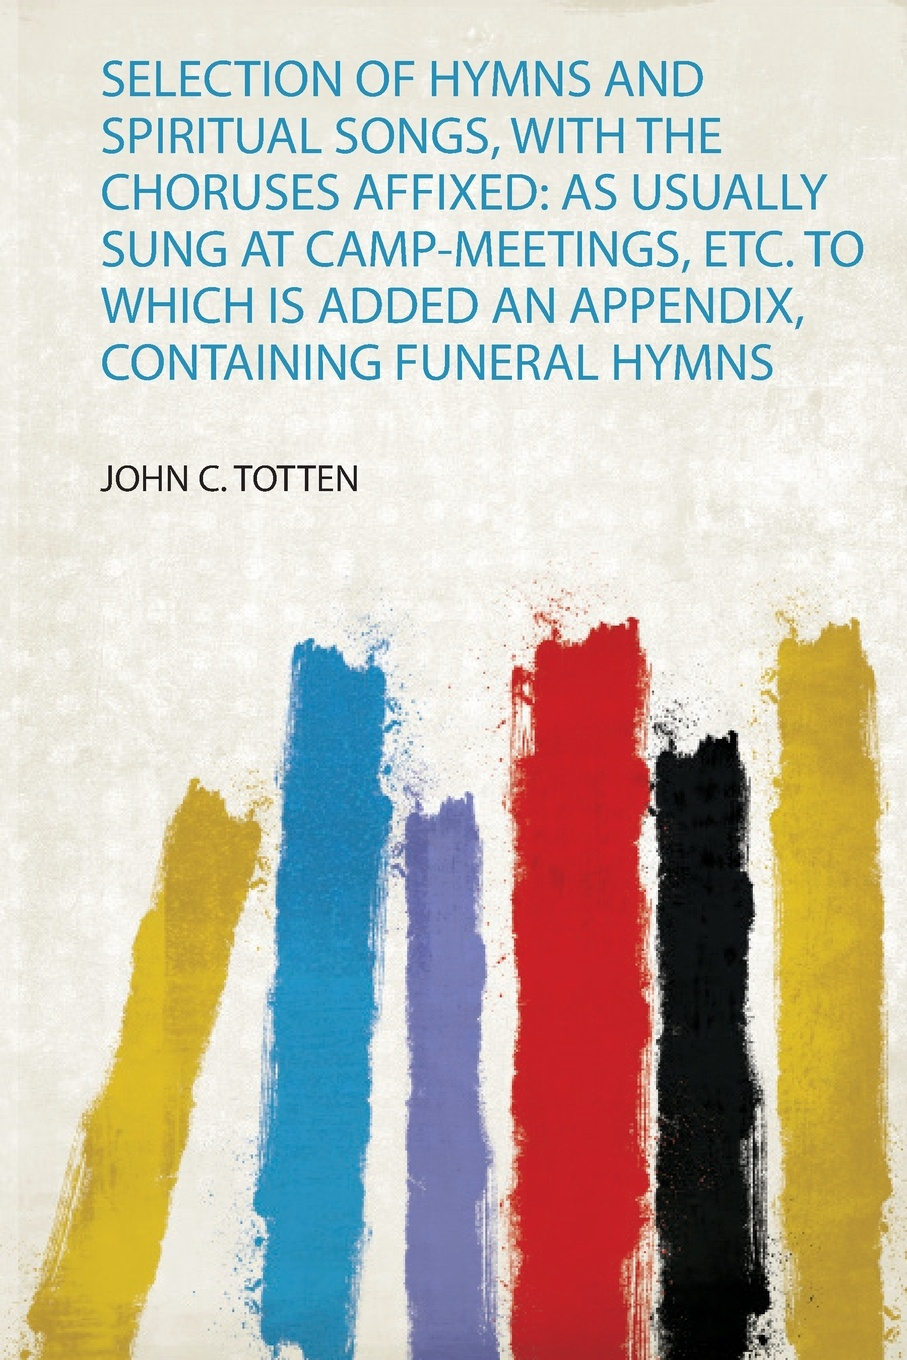 Фото - Selection of Hymns and Spiritual Songs, With the Choruses Affixed. as Usually Sung at Camp-Meetings, Etc. to Which Is Added an Appendix, Containing Funeral Hymns william parkinson a selection of hymns and spiritual songs